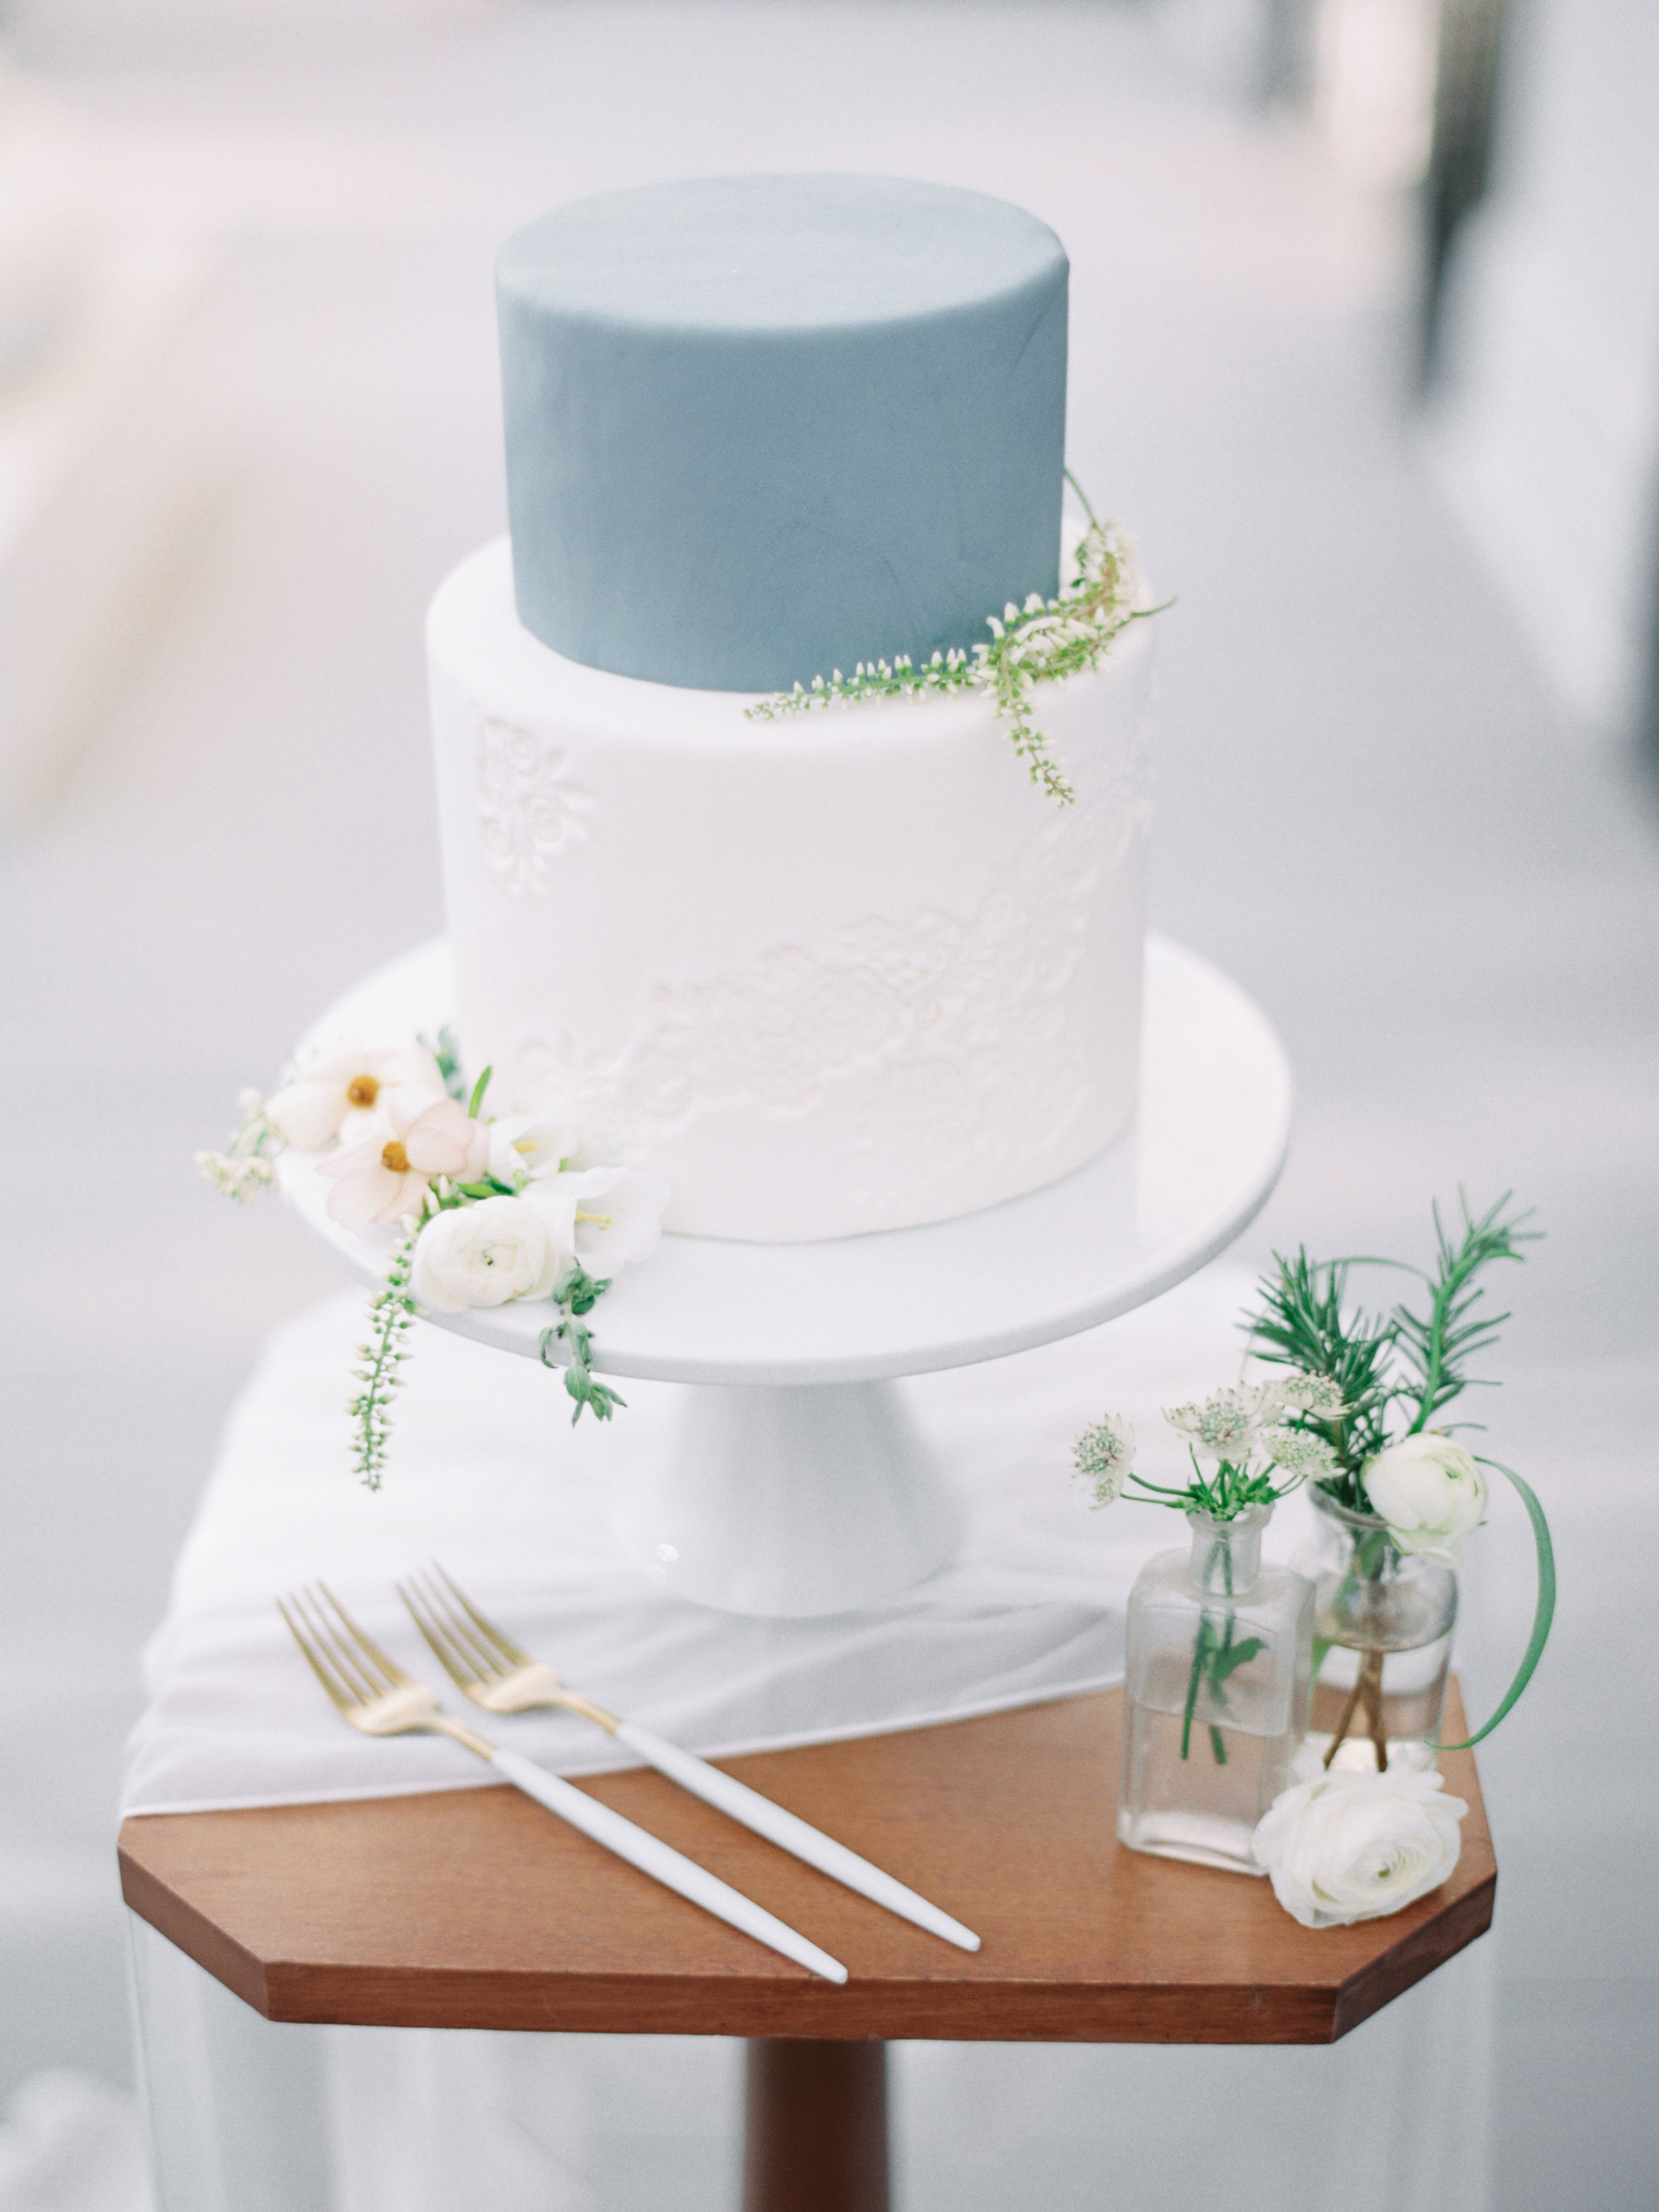 Minimalist White and Gray Aesthetic Wedding Cake with Silk Chiffon White Table Runner